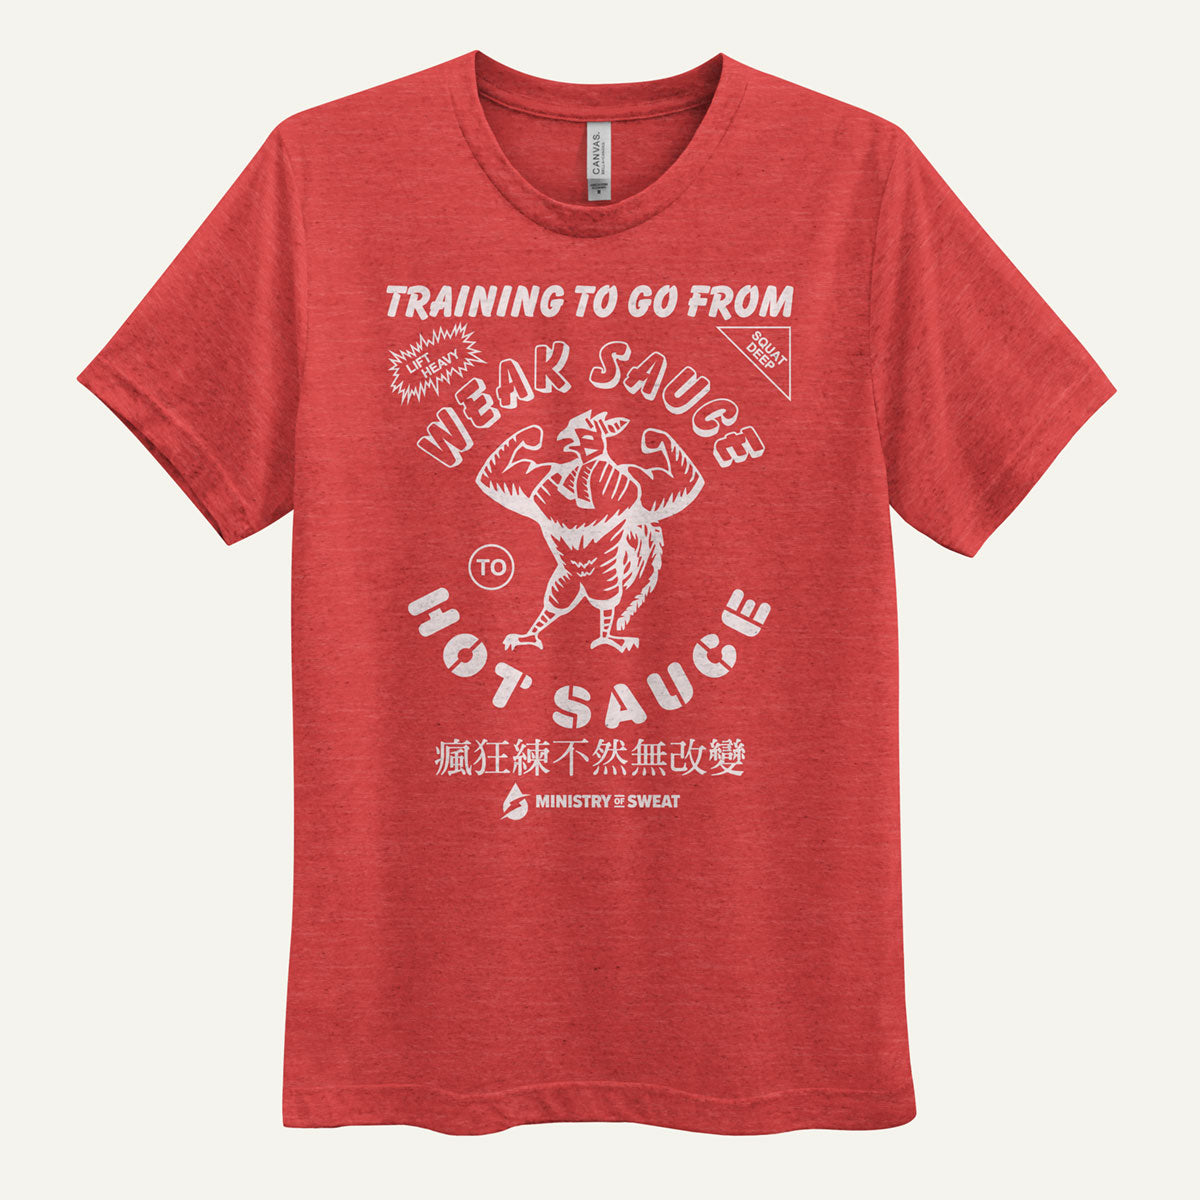 b002429e9 Funny Workout Shirts, Funny Workout Tanks, & More | Ministry of Sweat